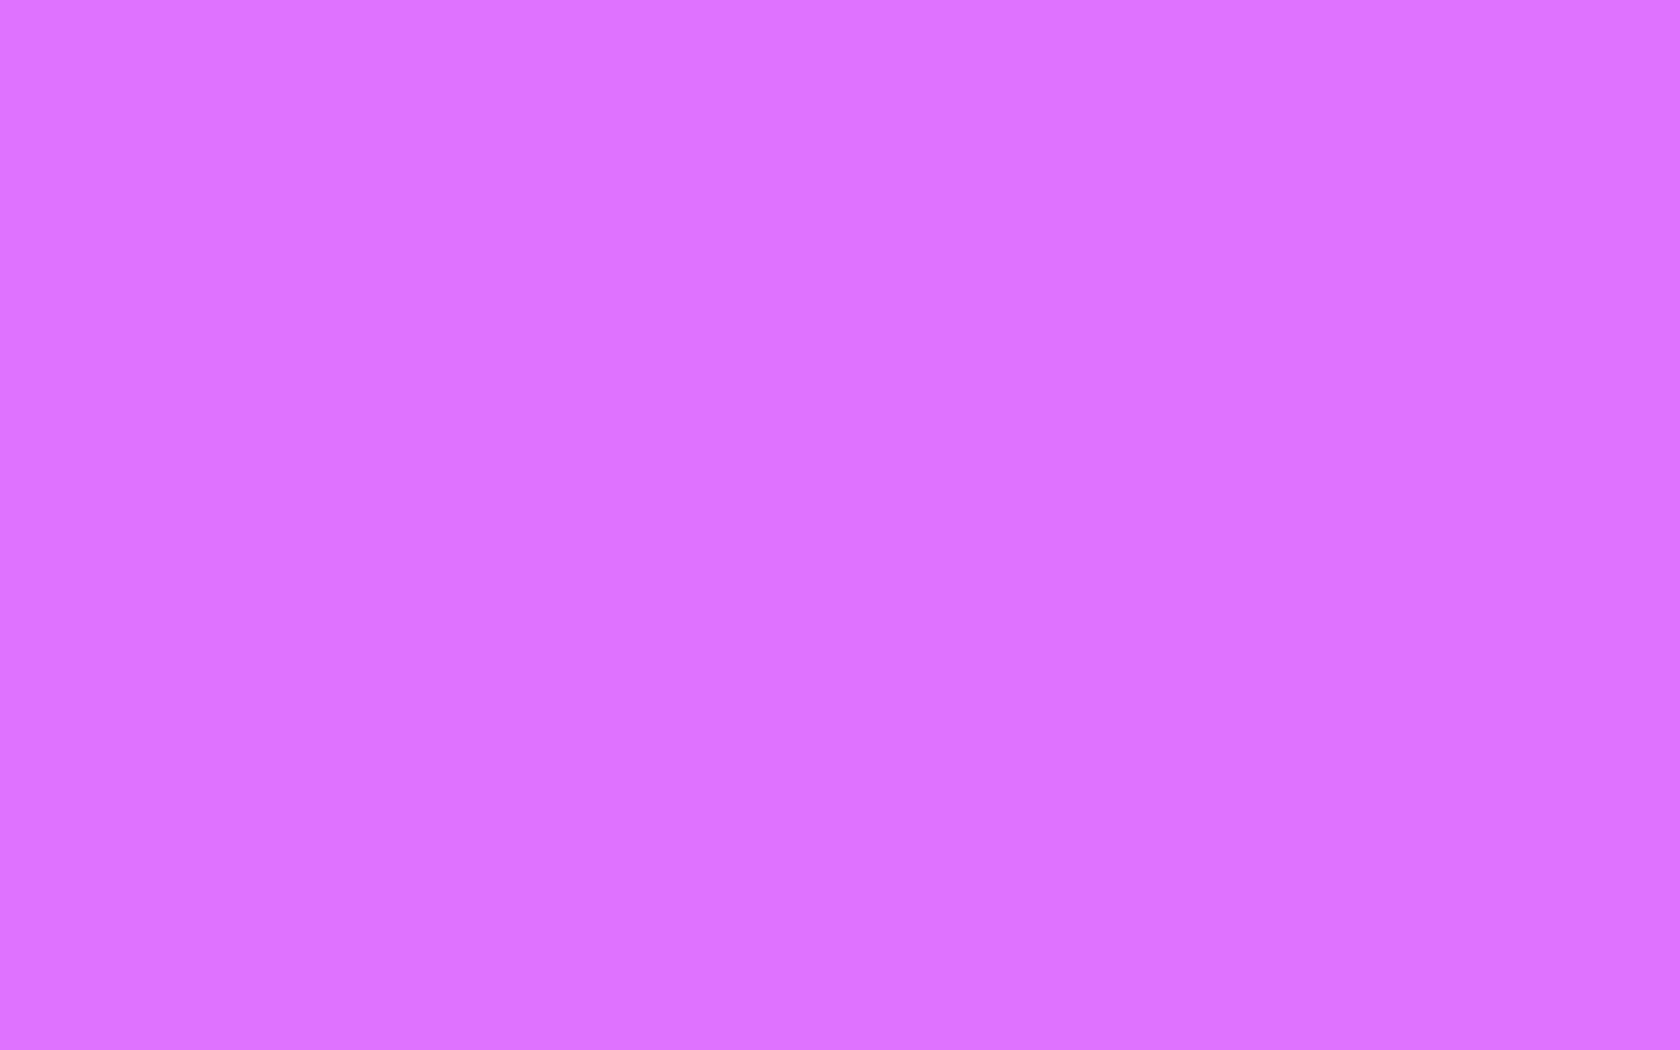 1680x1050 Heliotrope Solid Color Background